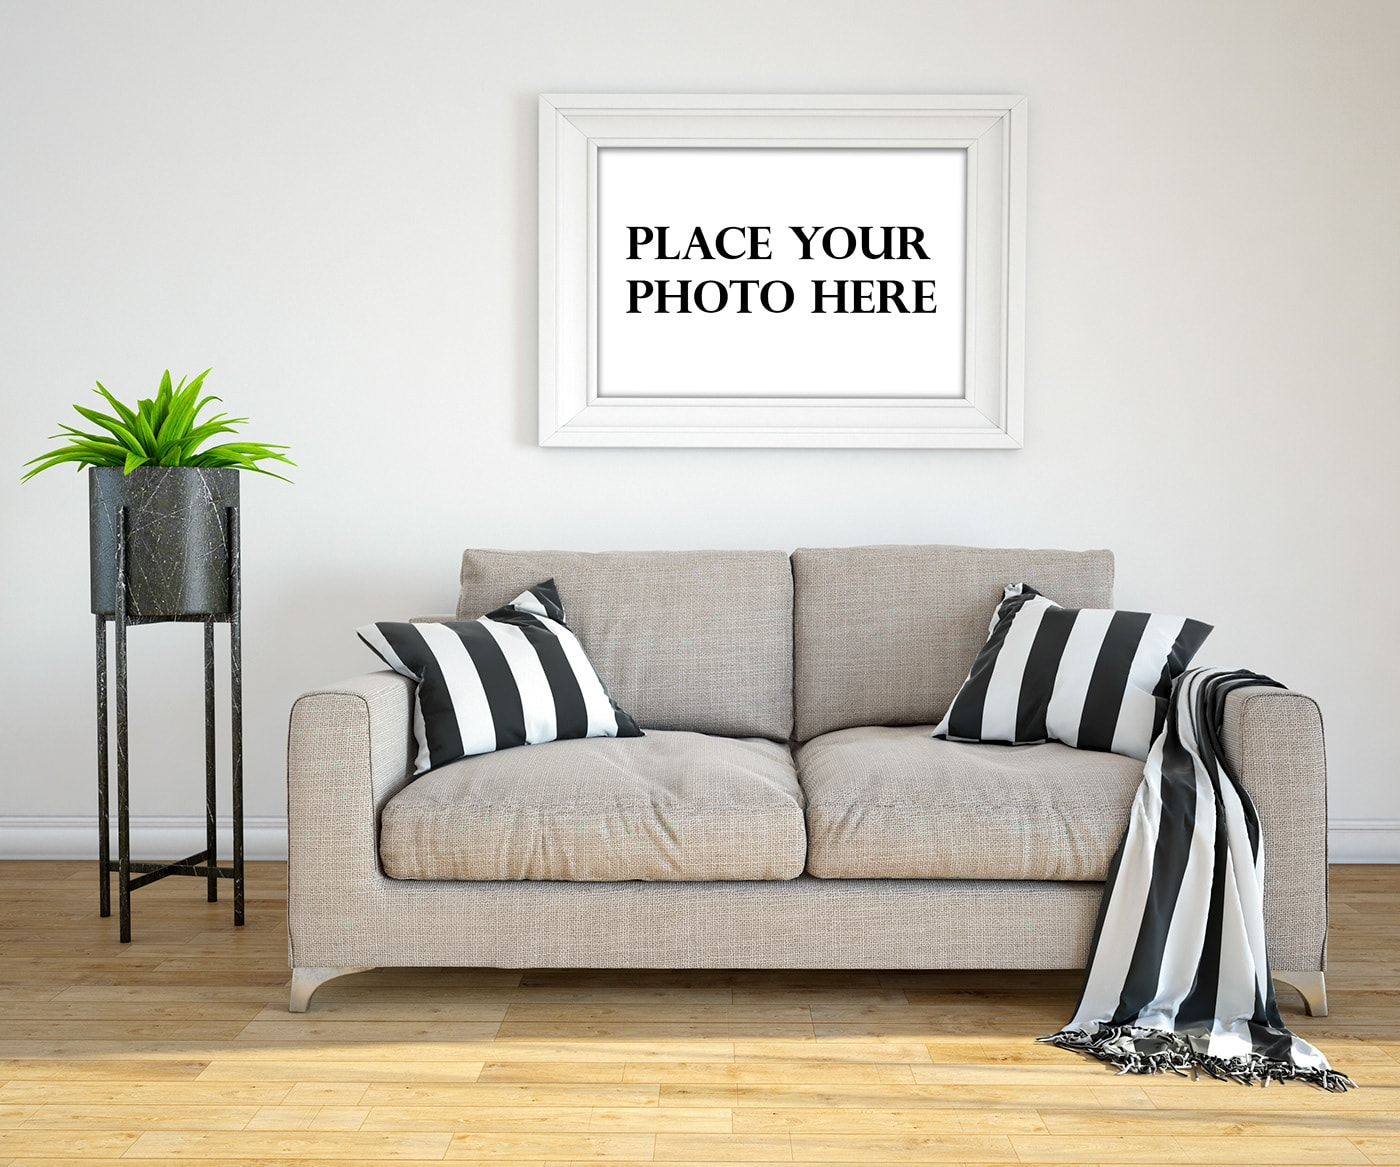 Free Interior Photo Frame Mockup